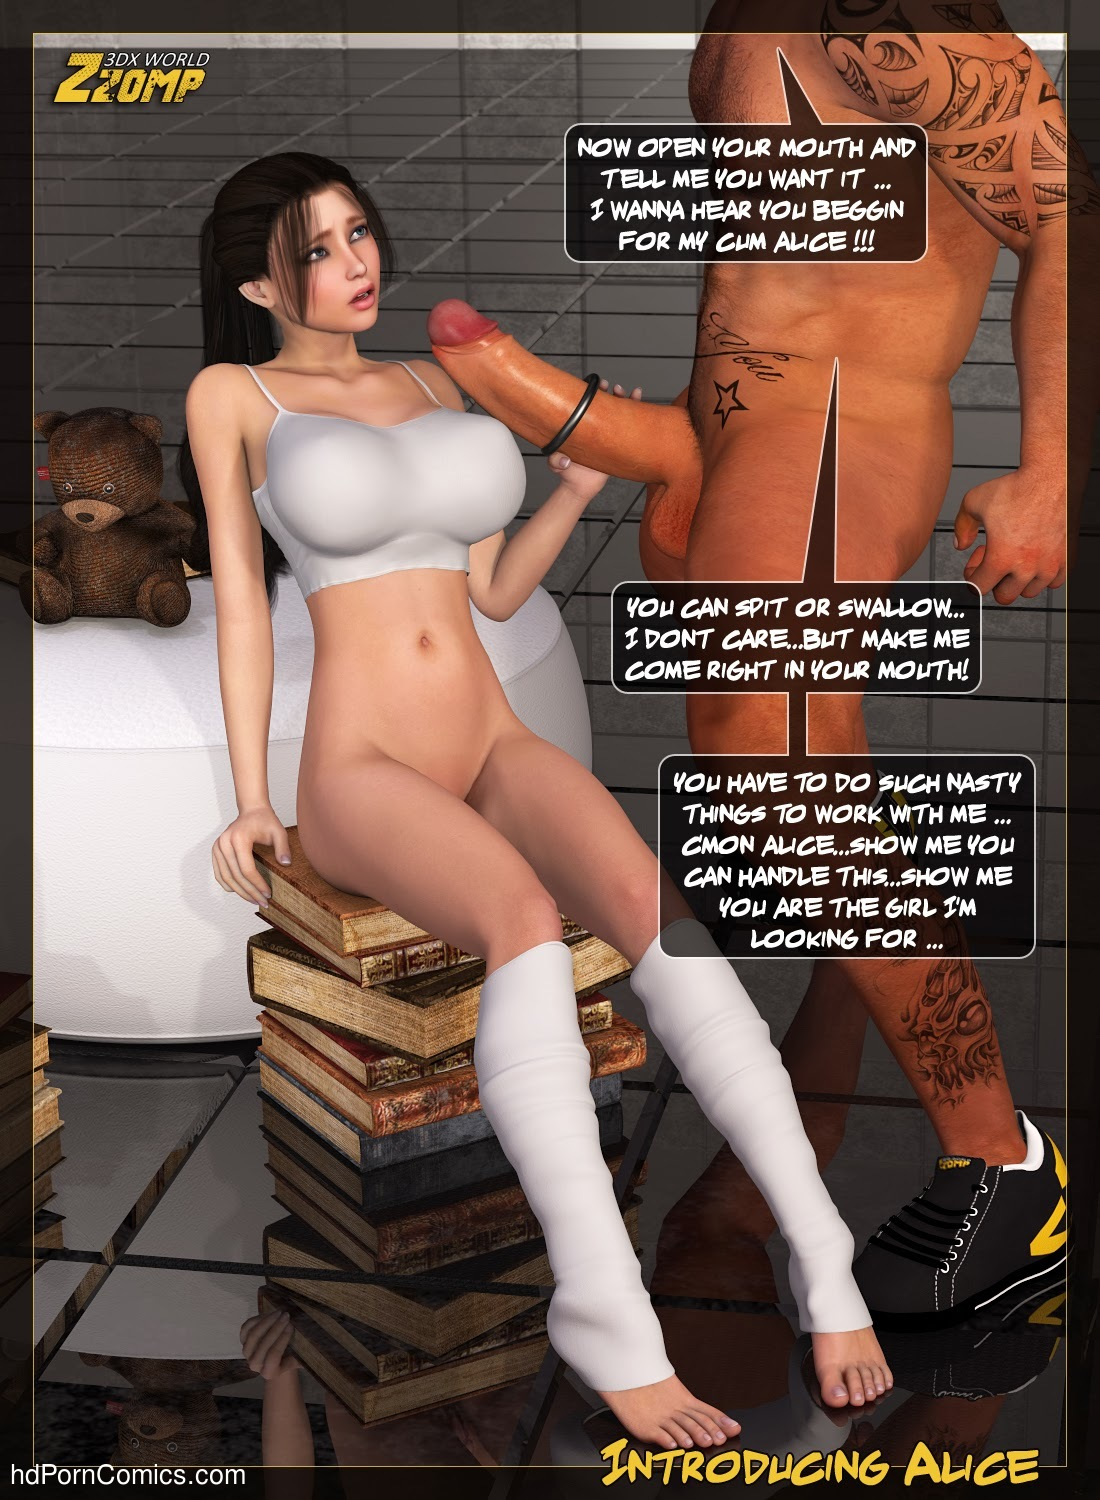 Zzomp – Introducing Alice14 free sex comic